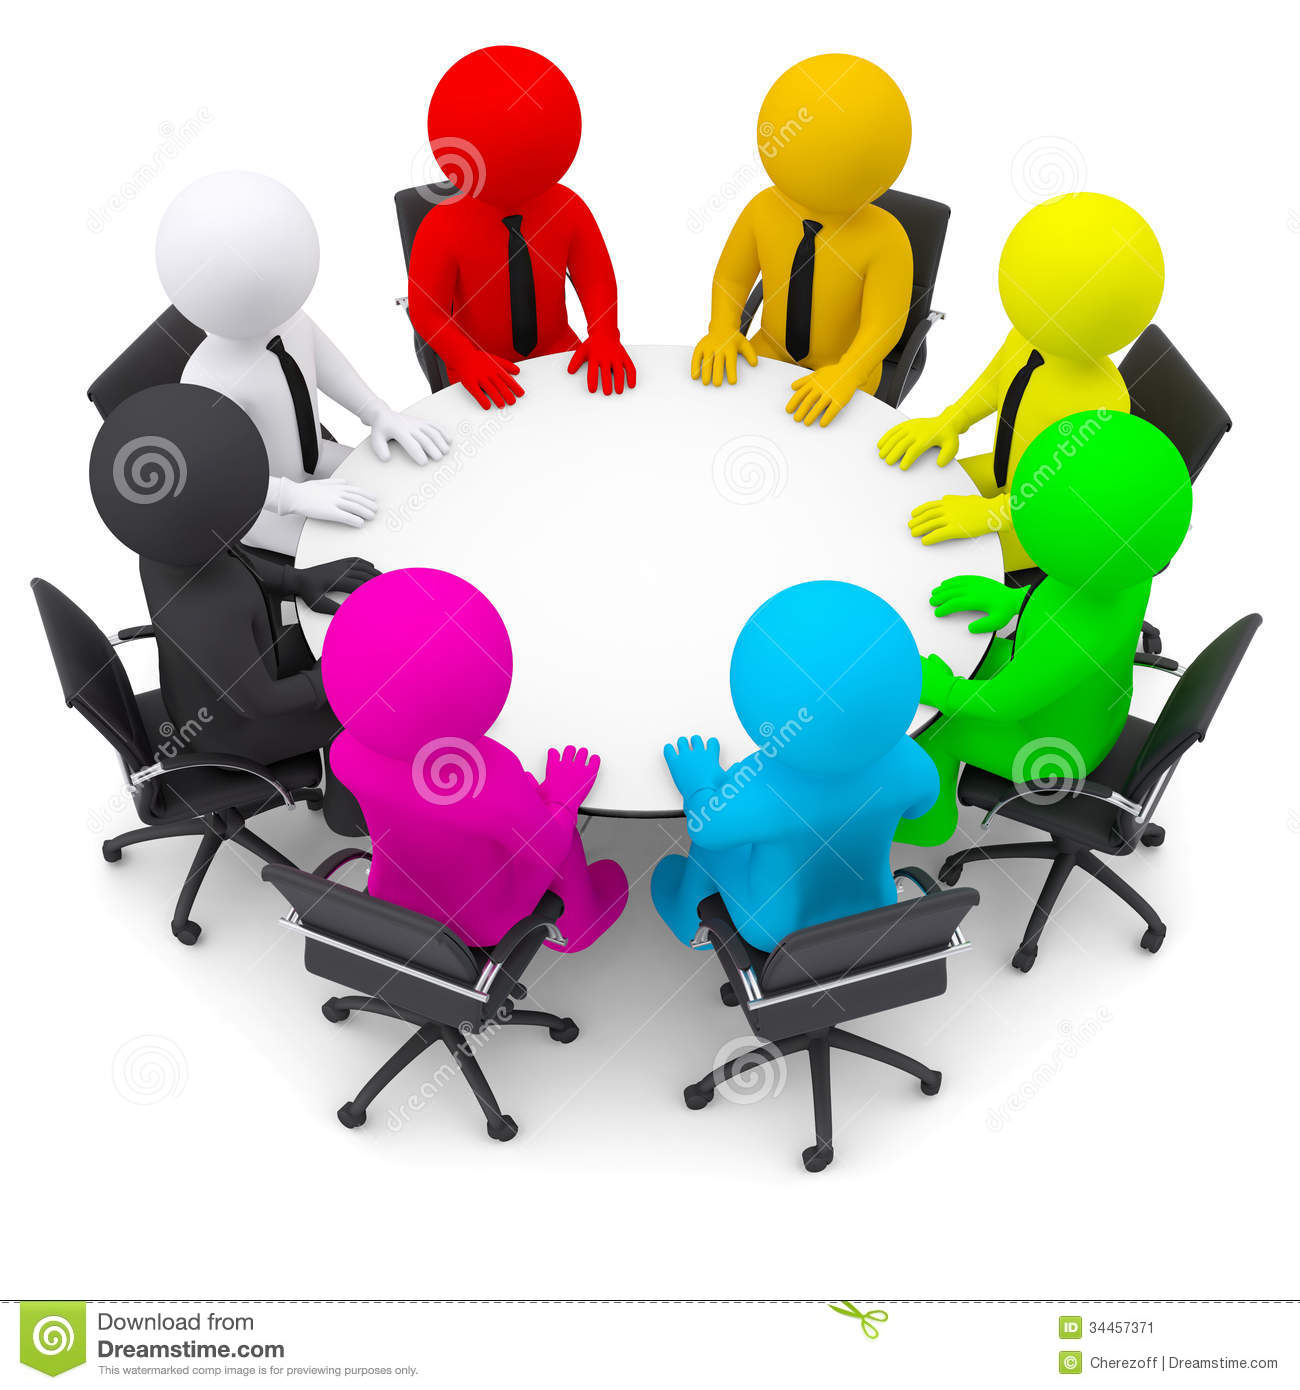 Meeting clipart round table conference Round clipart Round sitting